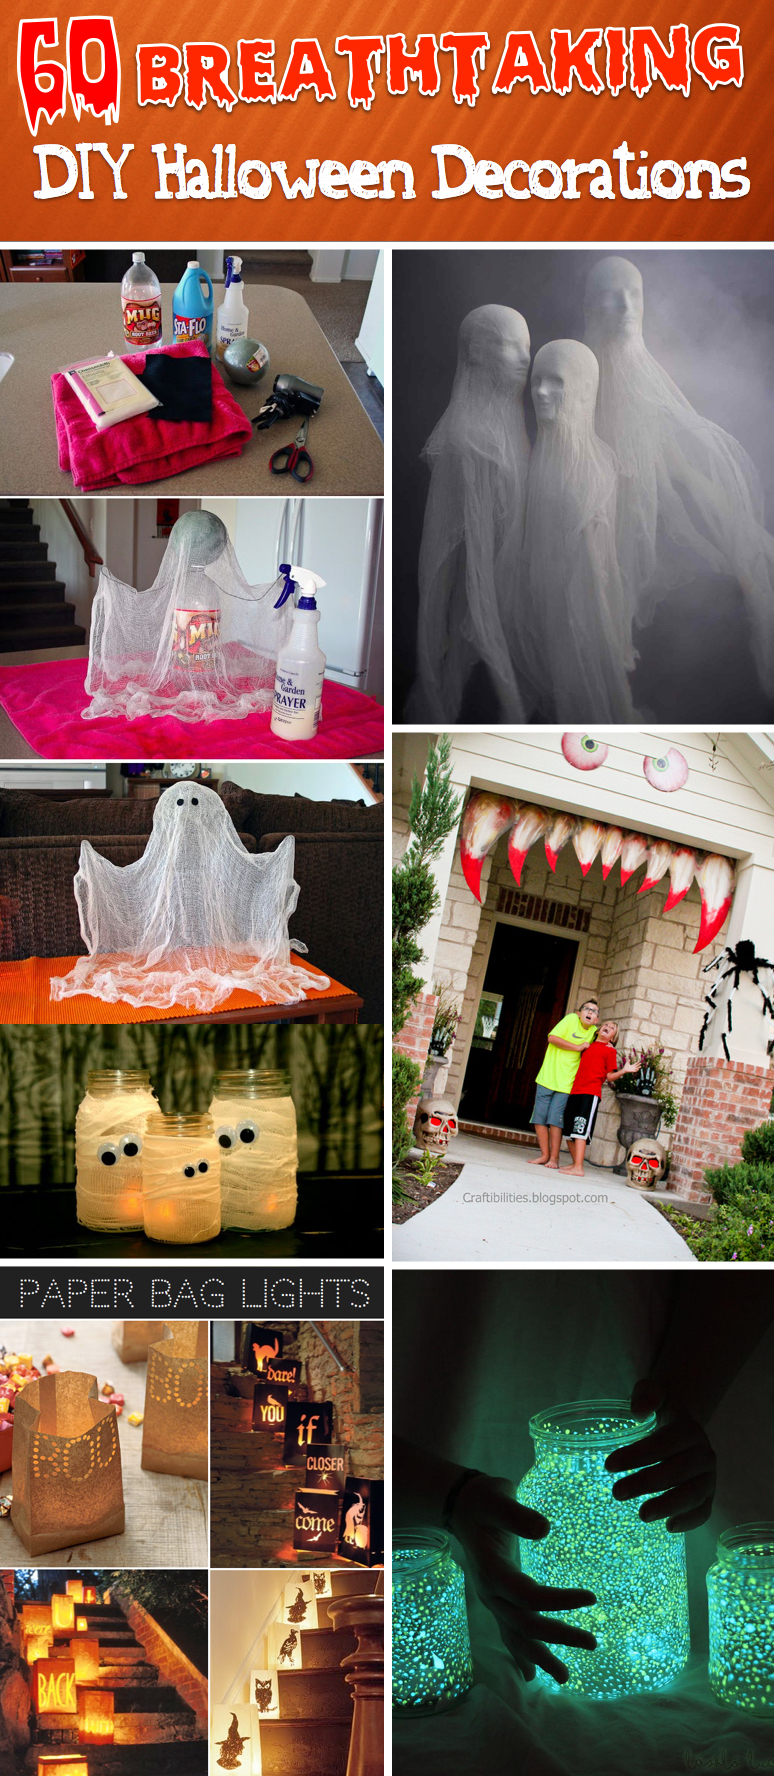 60 breathtaking and effortless diy halloween decorations - Cheap Do It Yourself Halloween Decorations